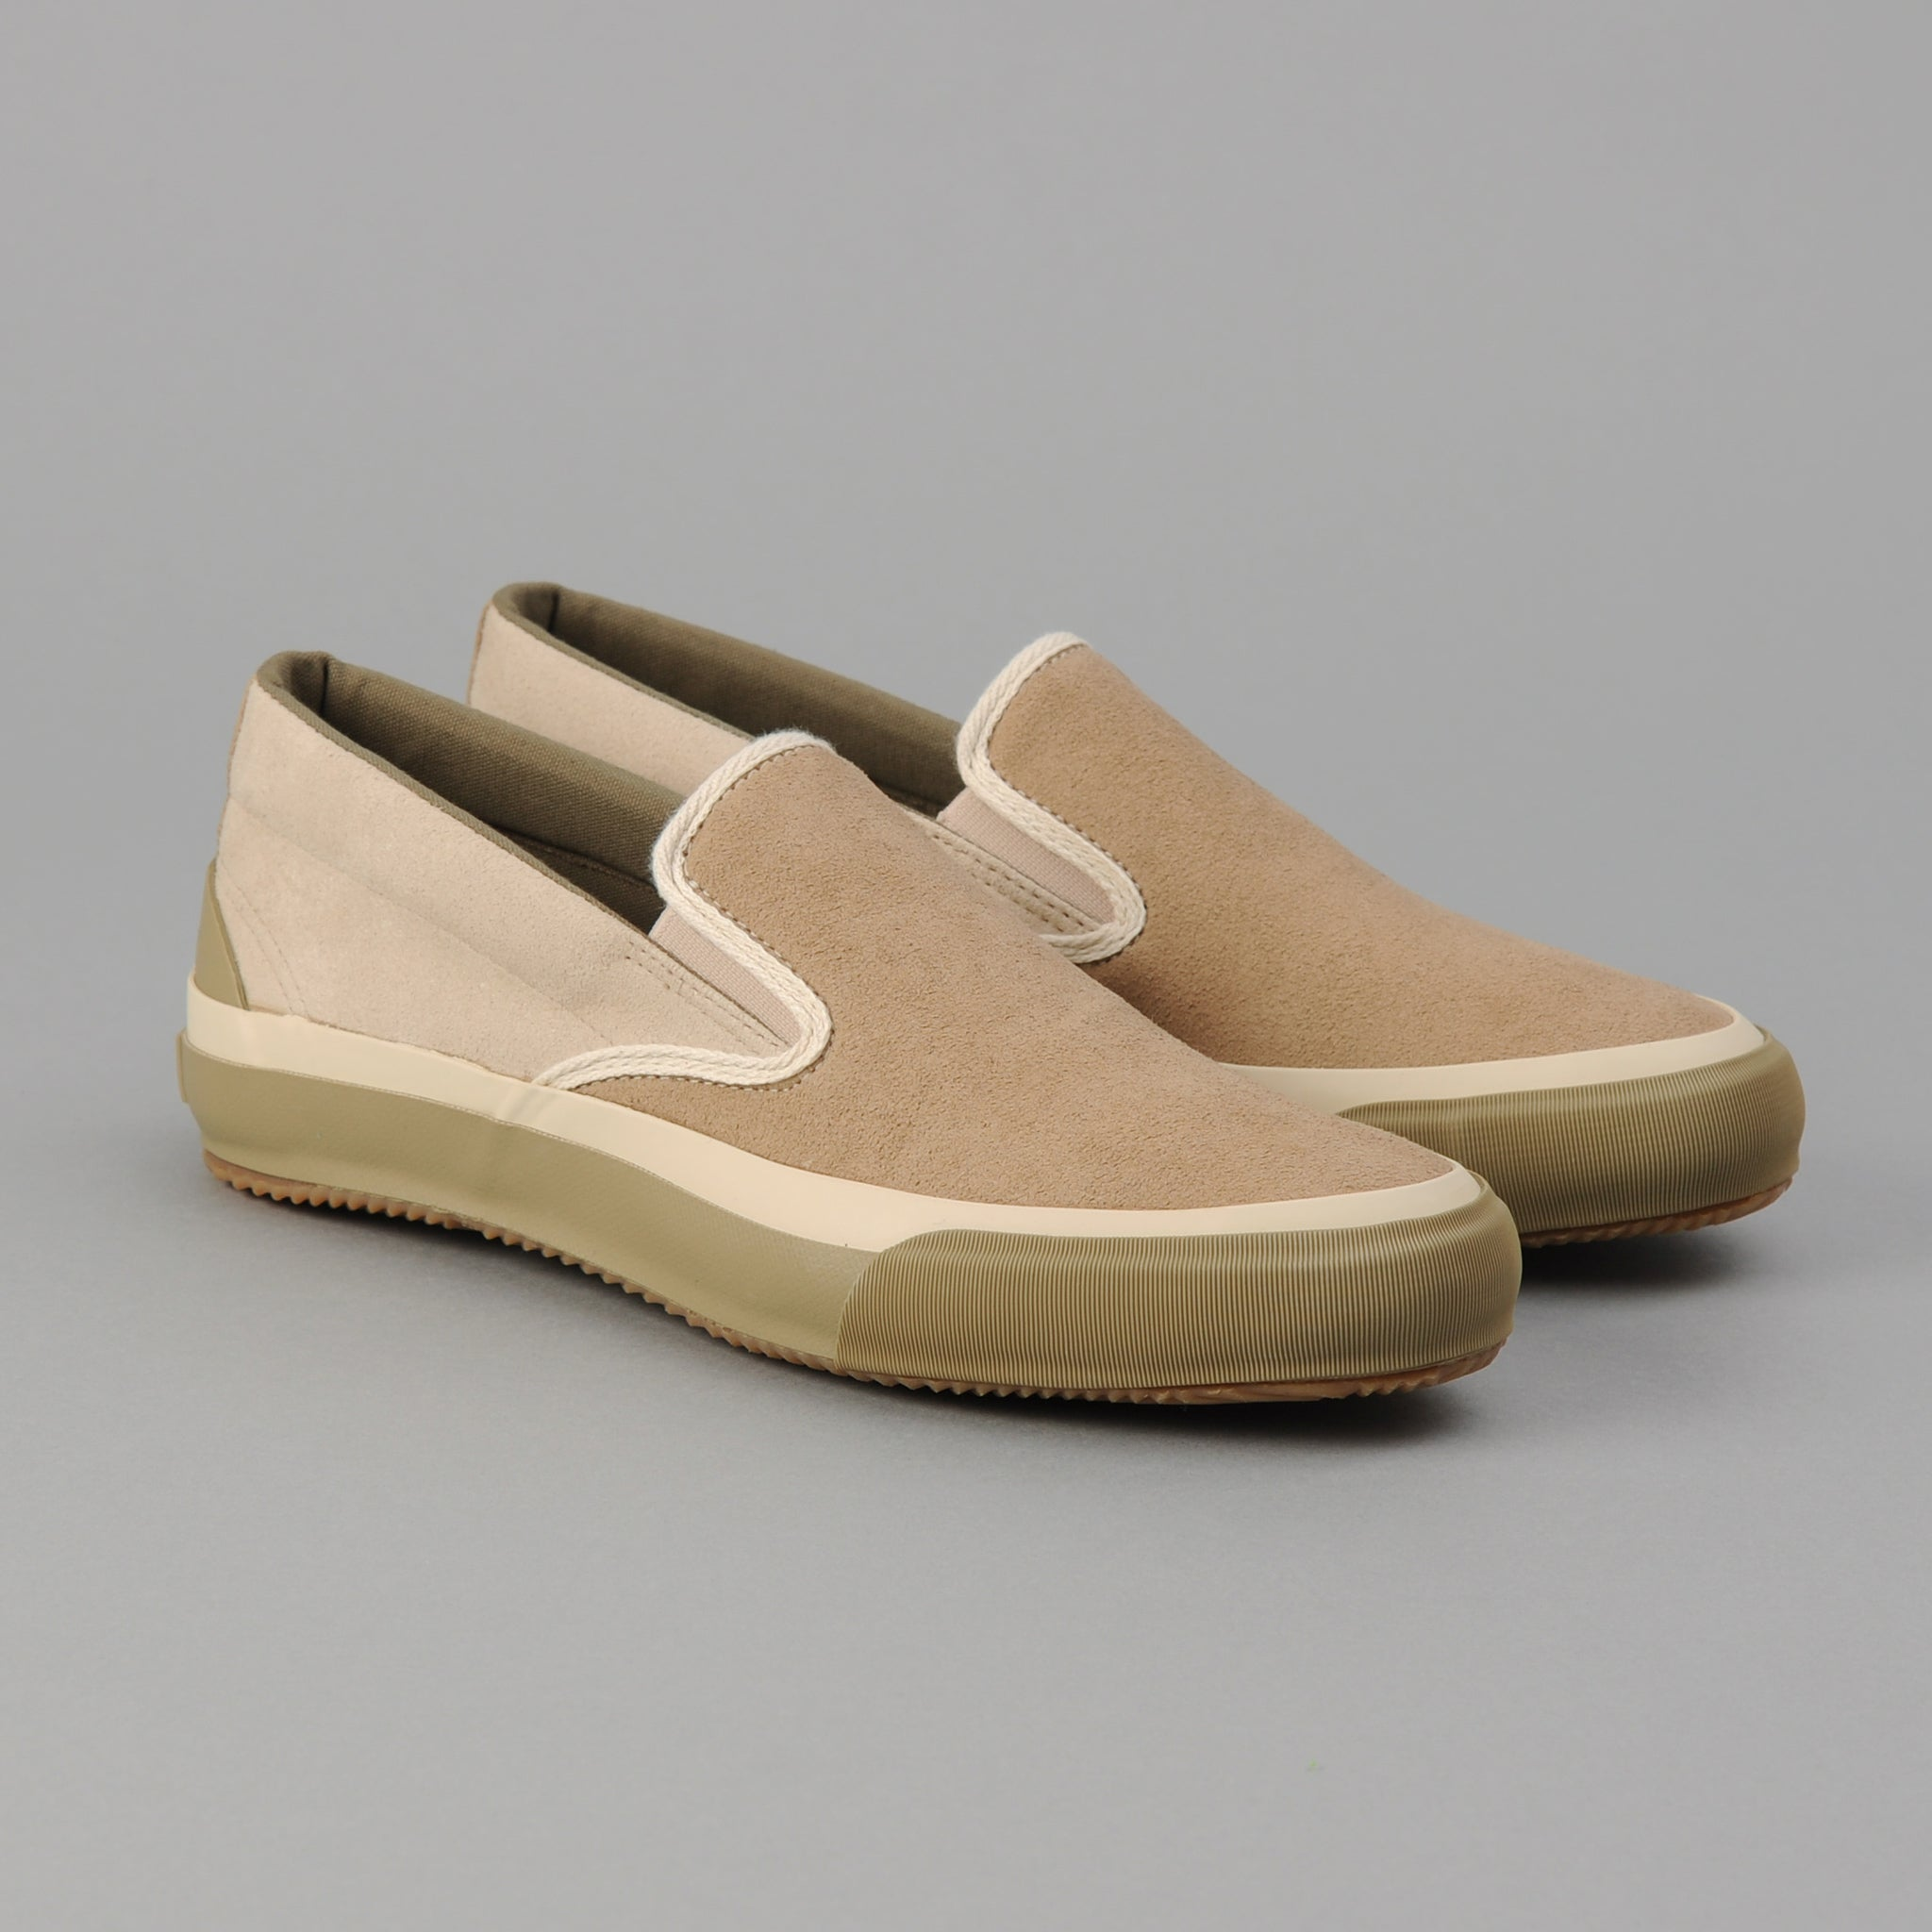 The Hill-Side - New Slip-On, Two-Tone Synth Suede - SN5-474